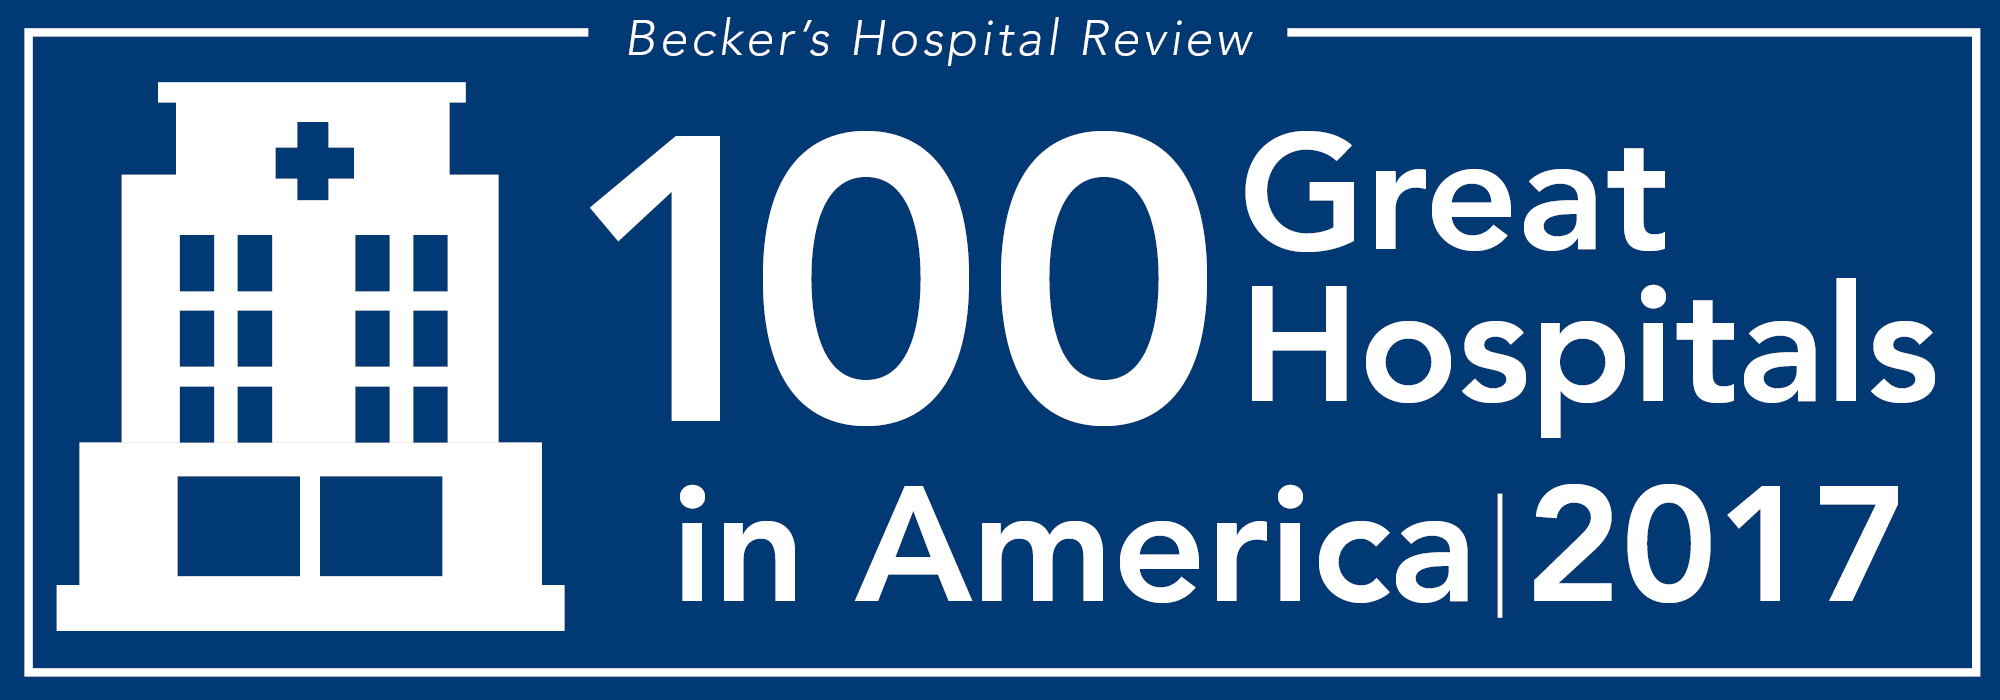 Tisch Hospital Ranking 100 Great Hospitals In America 2017